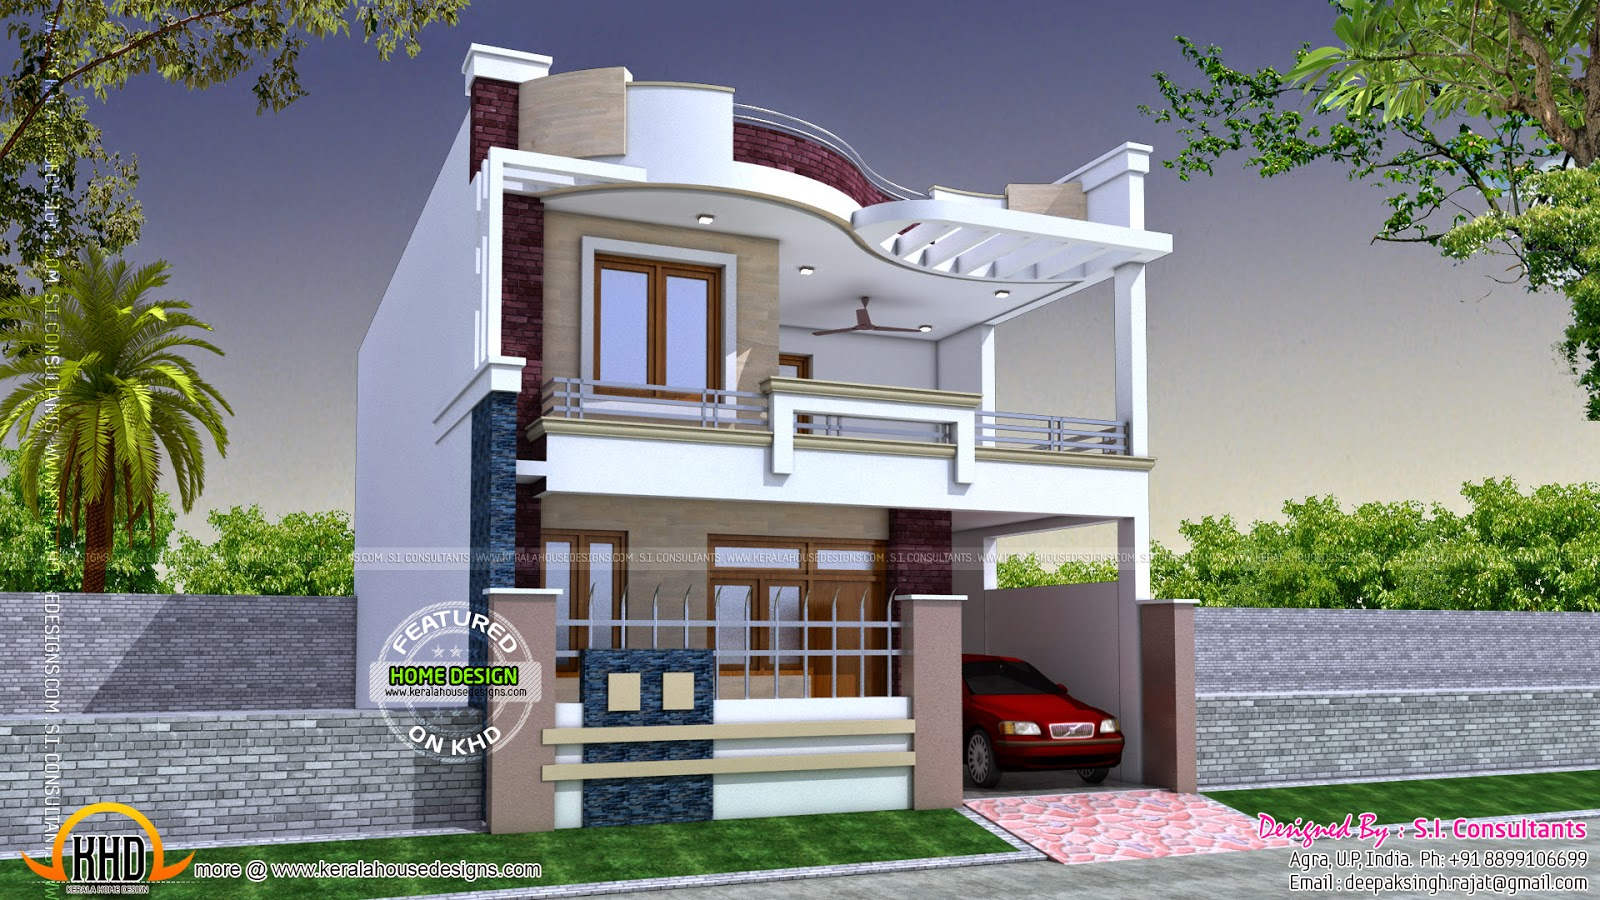 Modern indian home design kerala home design and floor plans for New home construction plans